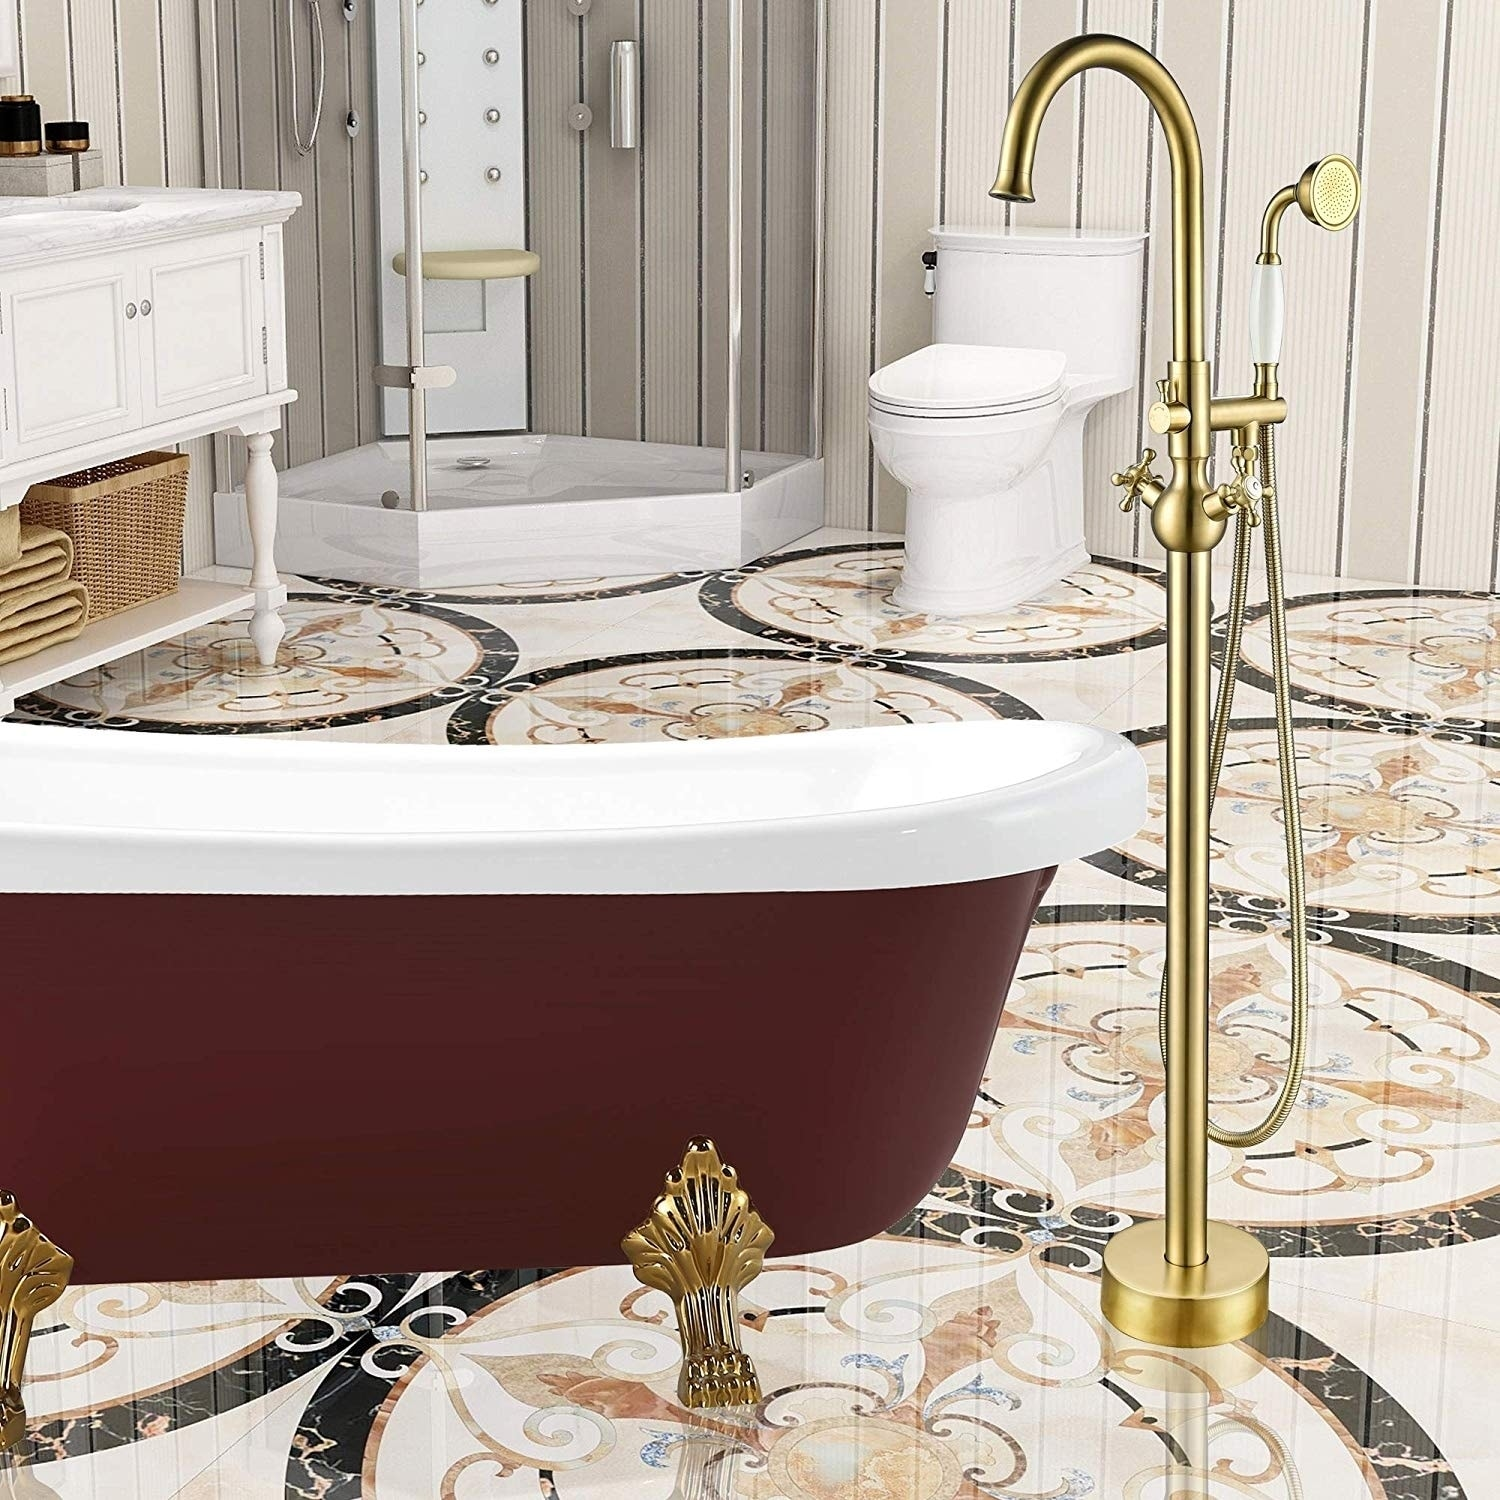 vanity art brushed brass finished bathtub faucet freestanding floor mounted single handle mixer tap with handheld shower